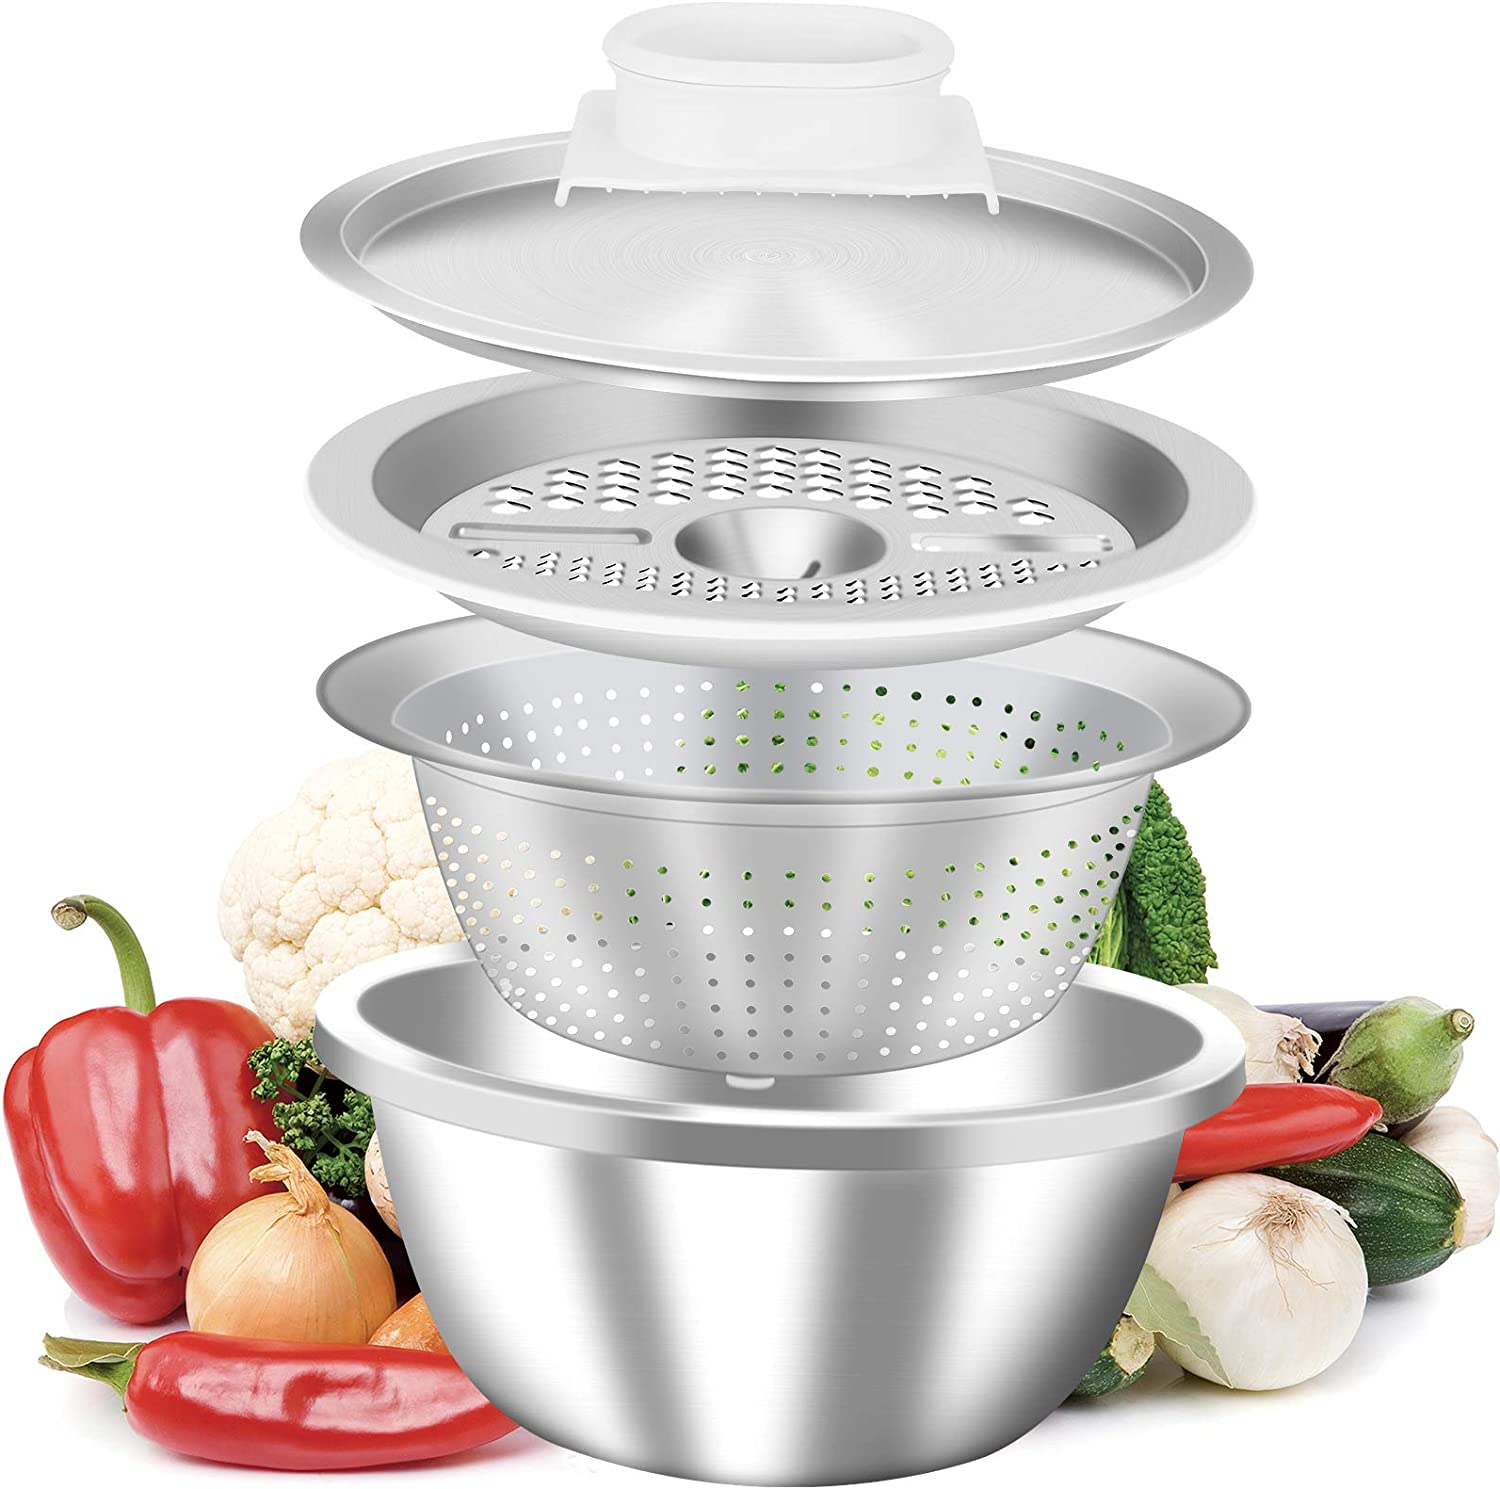 Q.ôôbitons Multifunctional Stainless Steel Basin -Drain Basket Vegetable With Cutter - 3 In 1 Kitchen Multipurpose Julienne Grater - Mesh Strainer Washing Vegetables Fruit